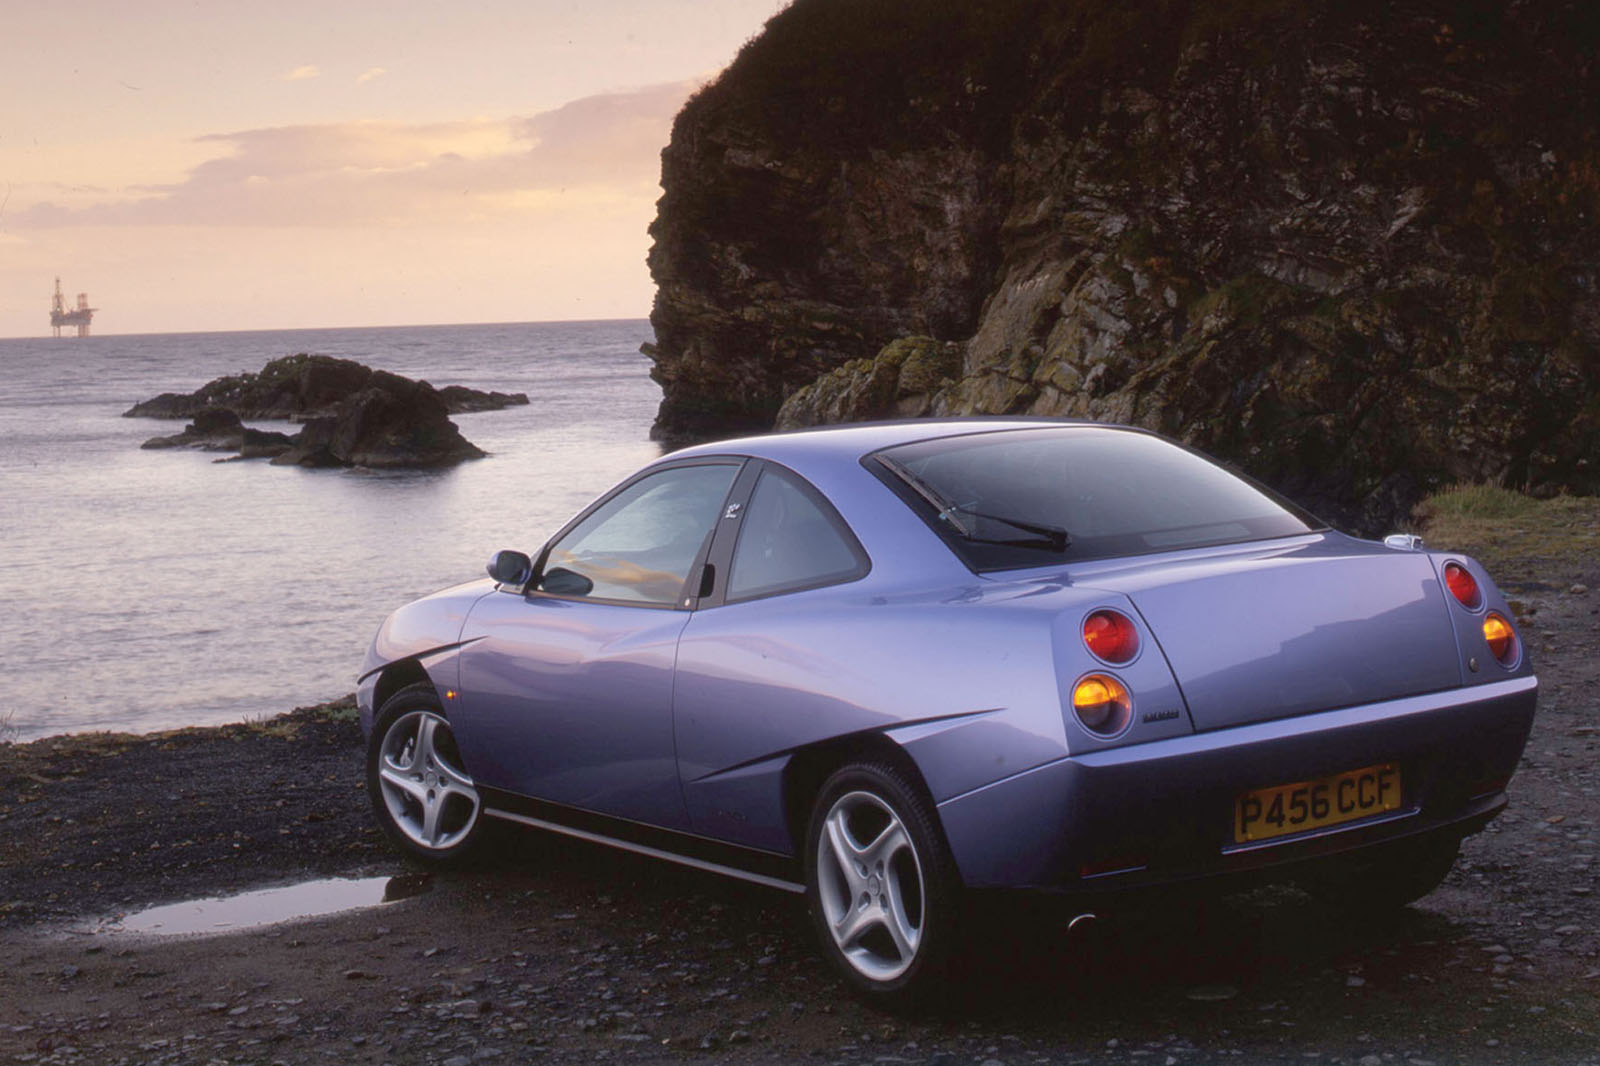 Fiat Coupe Used Car Buying Guide Fiat Coupe Autocar